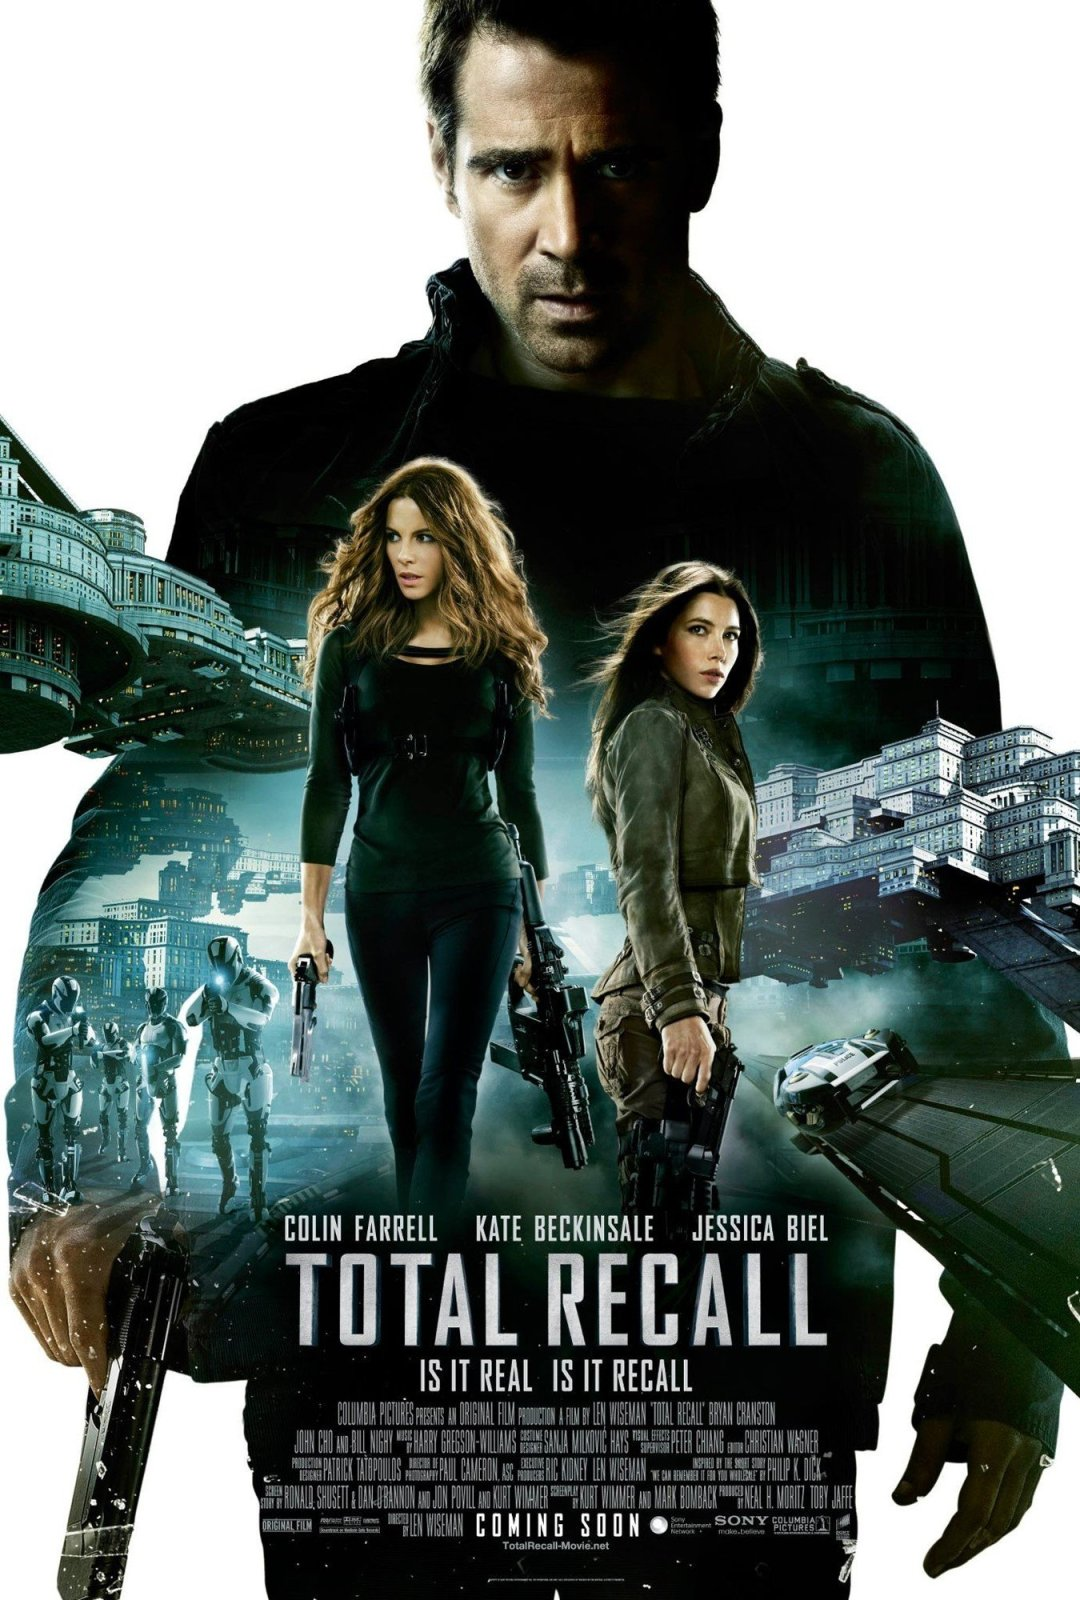 Total Recall  poster is copied by Jab Tak Hai Jaan